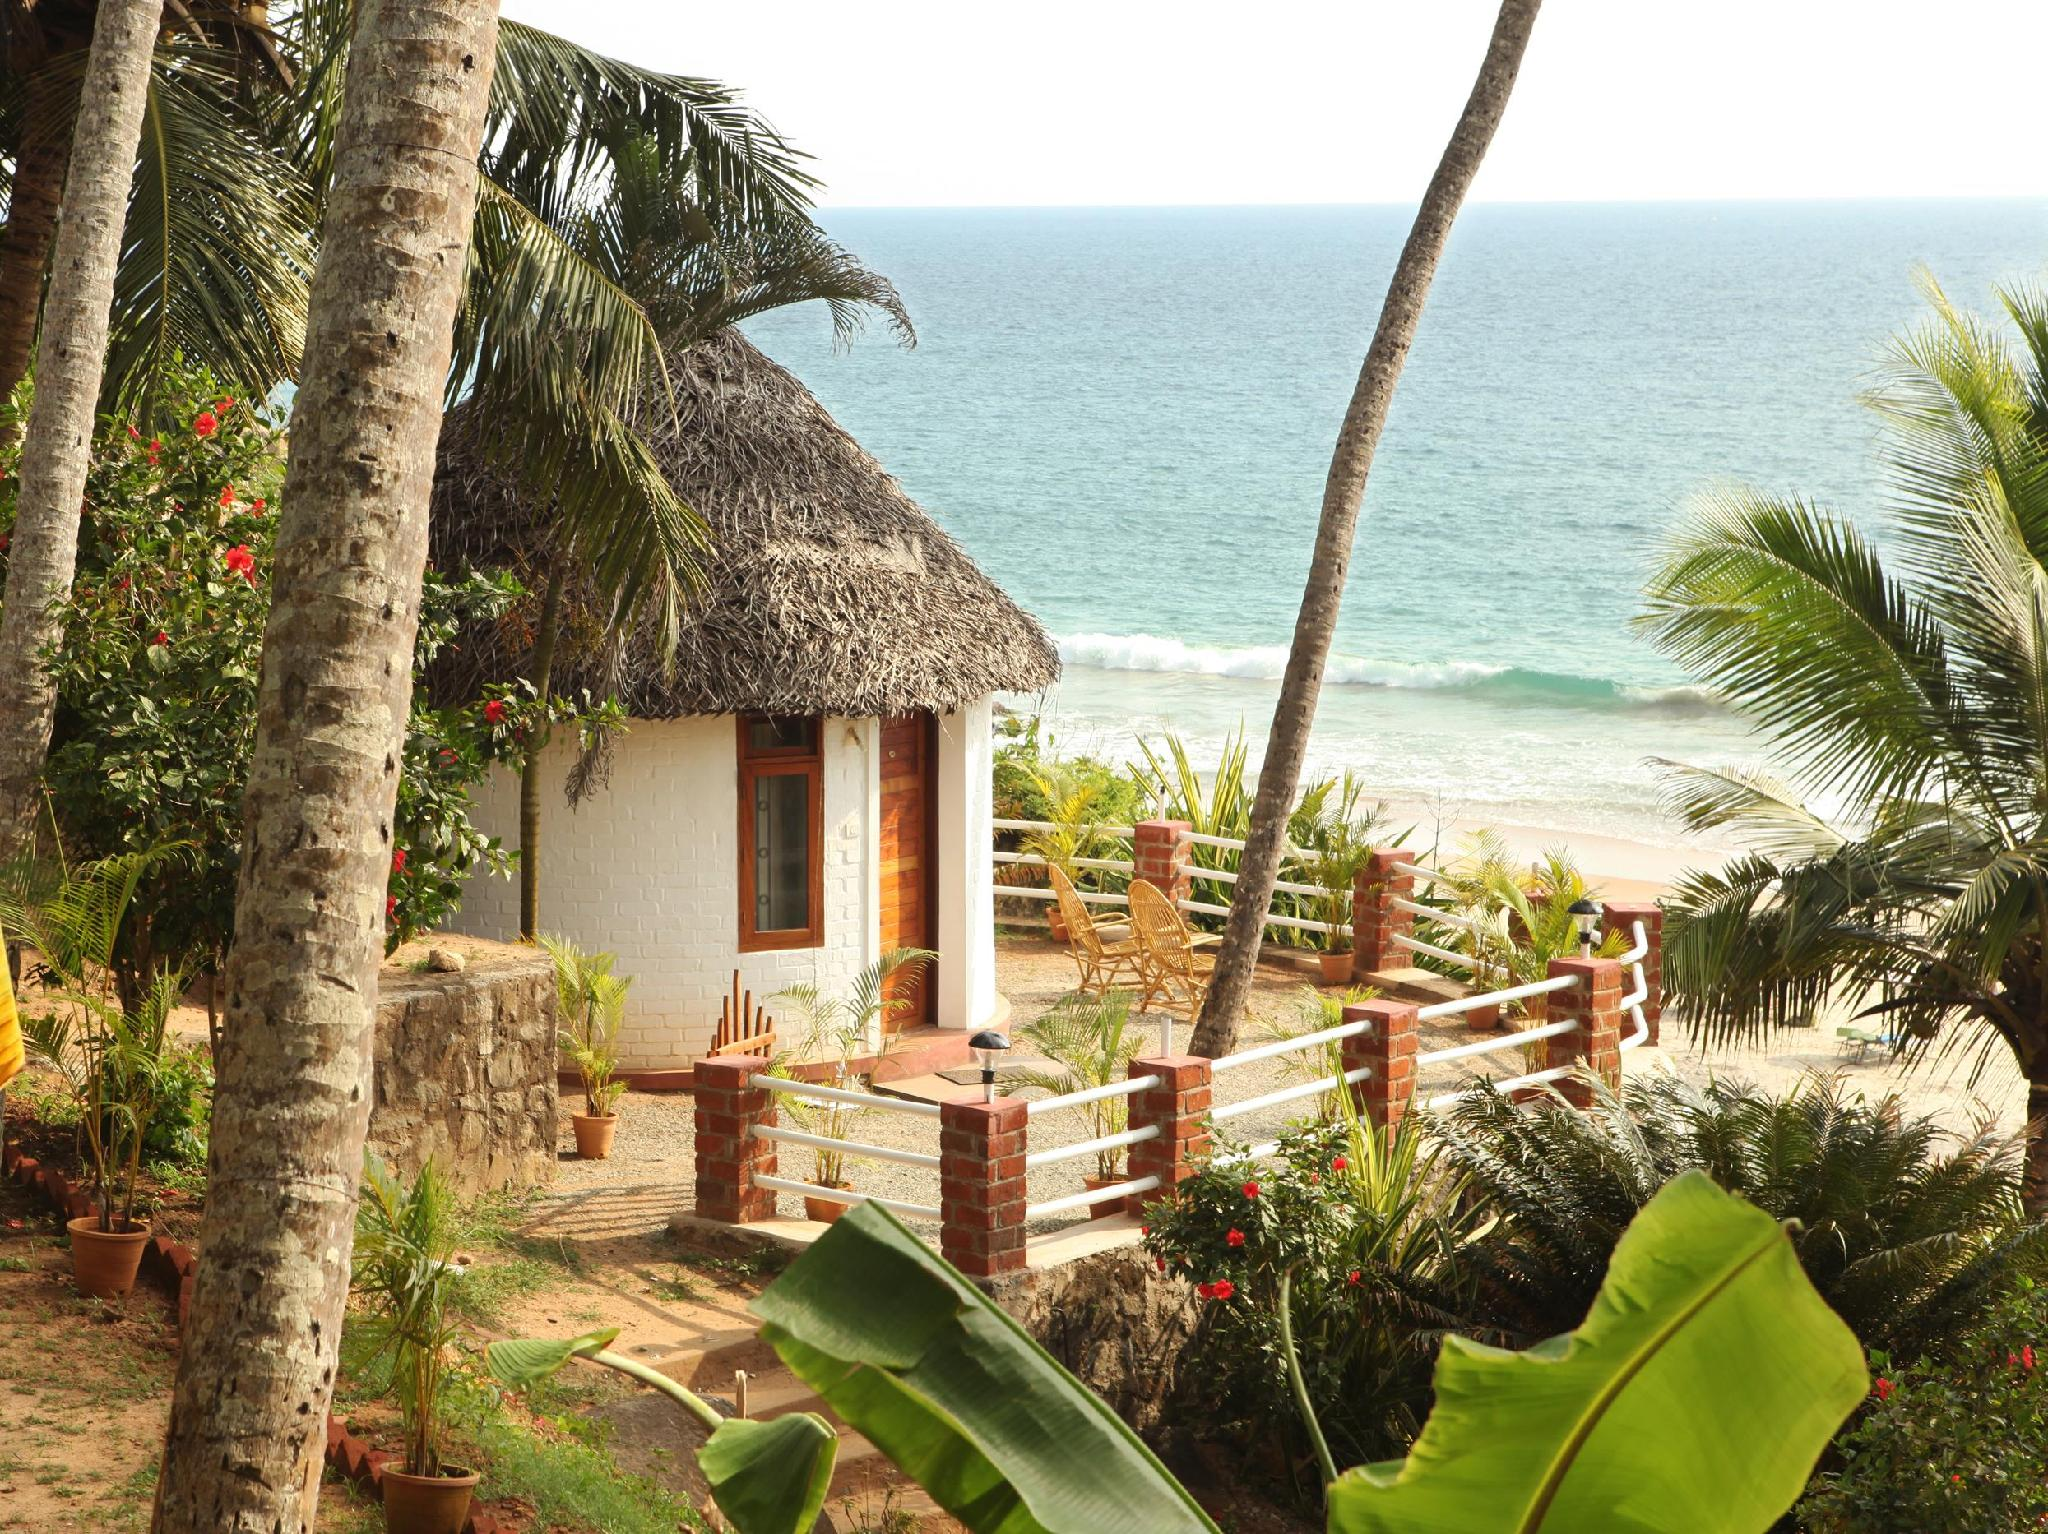 Soma Palmshore Resort - Hotel and accommodation in India in Kovalam